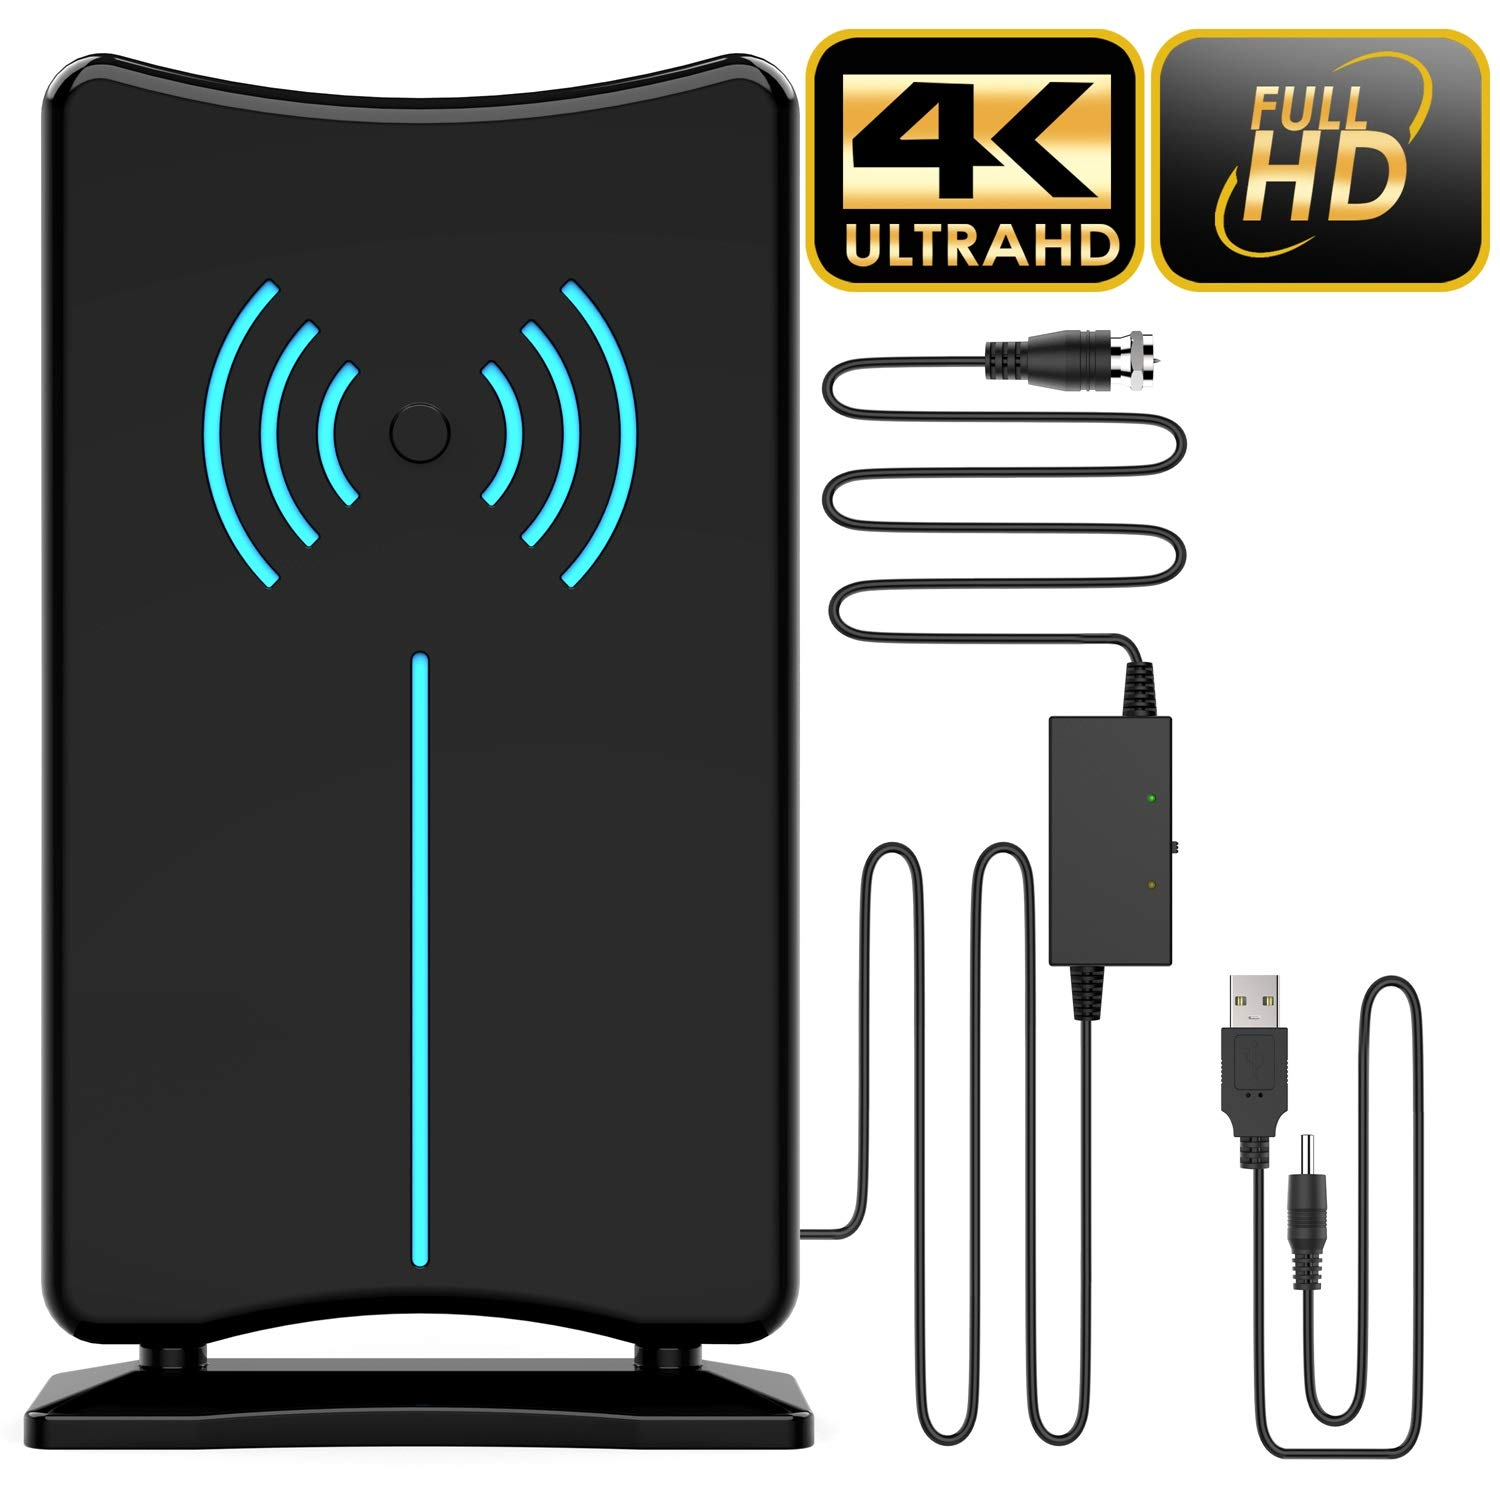 [Updated 2020 Version] Professional 150 Miles Amplified HD Digital TV Antenna, USA Patented Design, Support 4K 1080p…